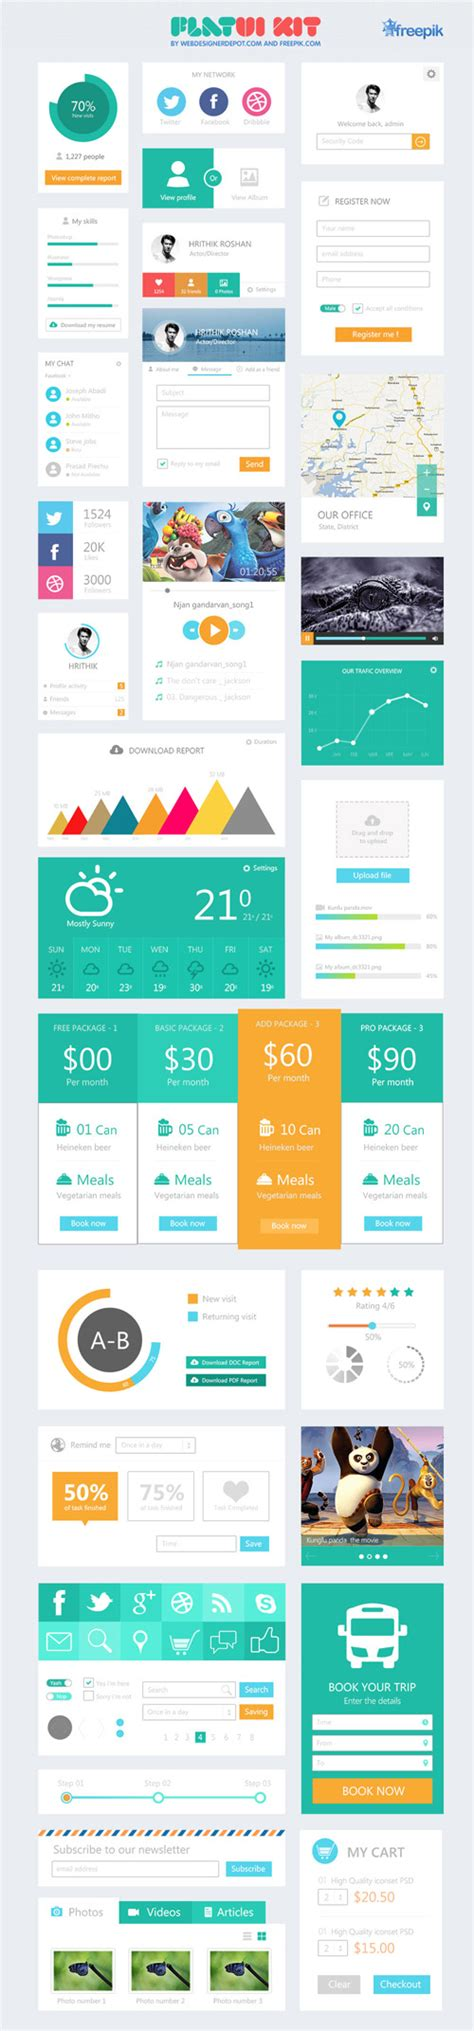 flat design ui elements freebie 45 flat ui design elements freebies graphic